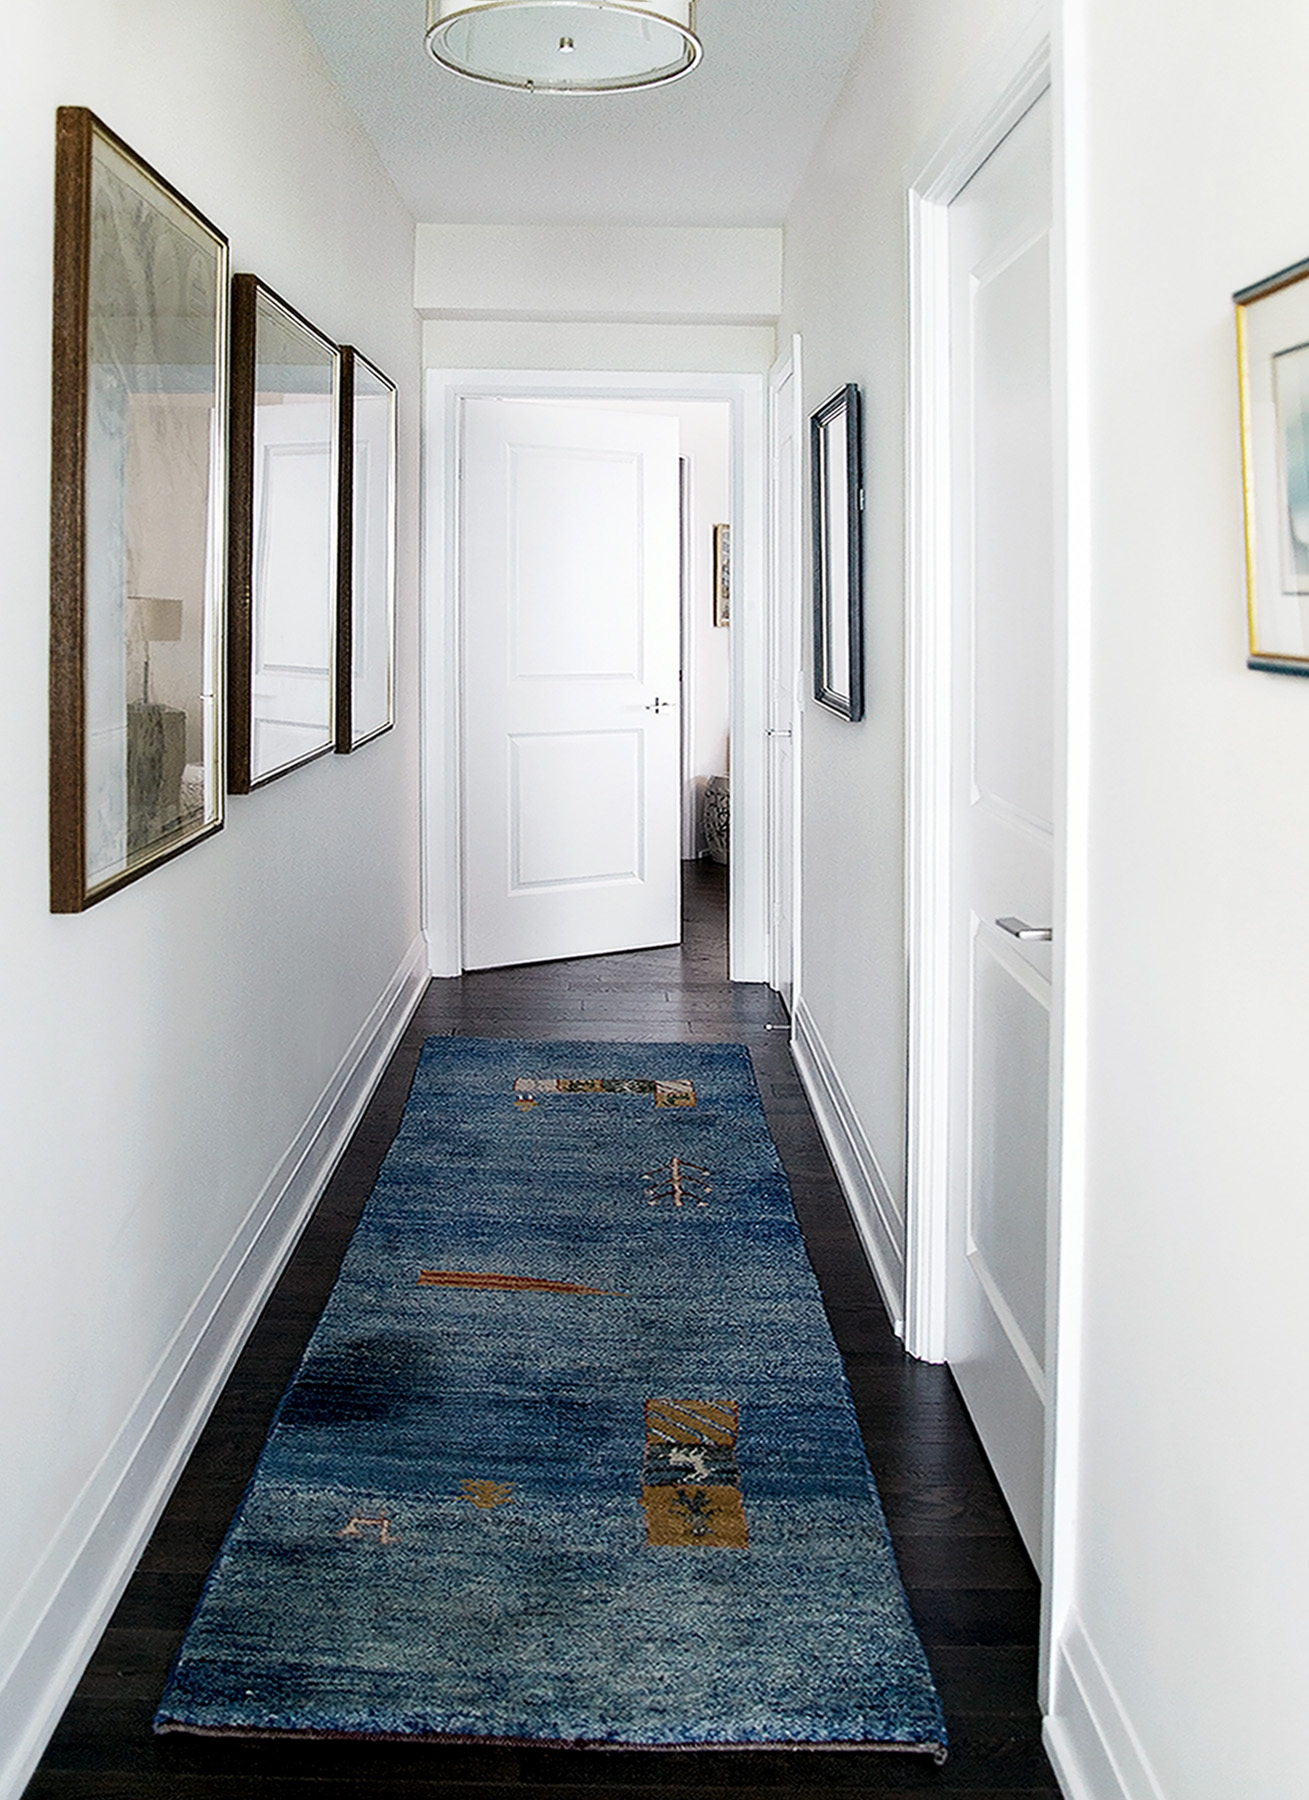 homefront redesigns project Old Mill Condo hallway, Kingsway